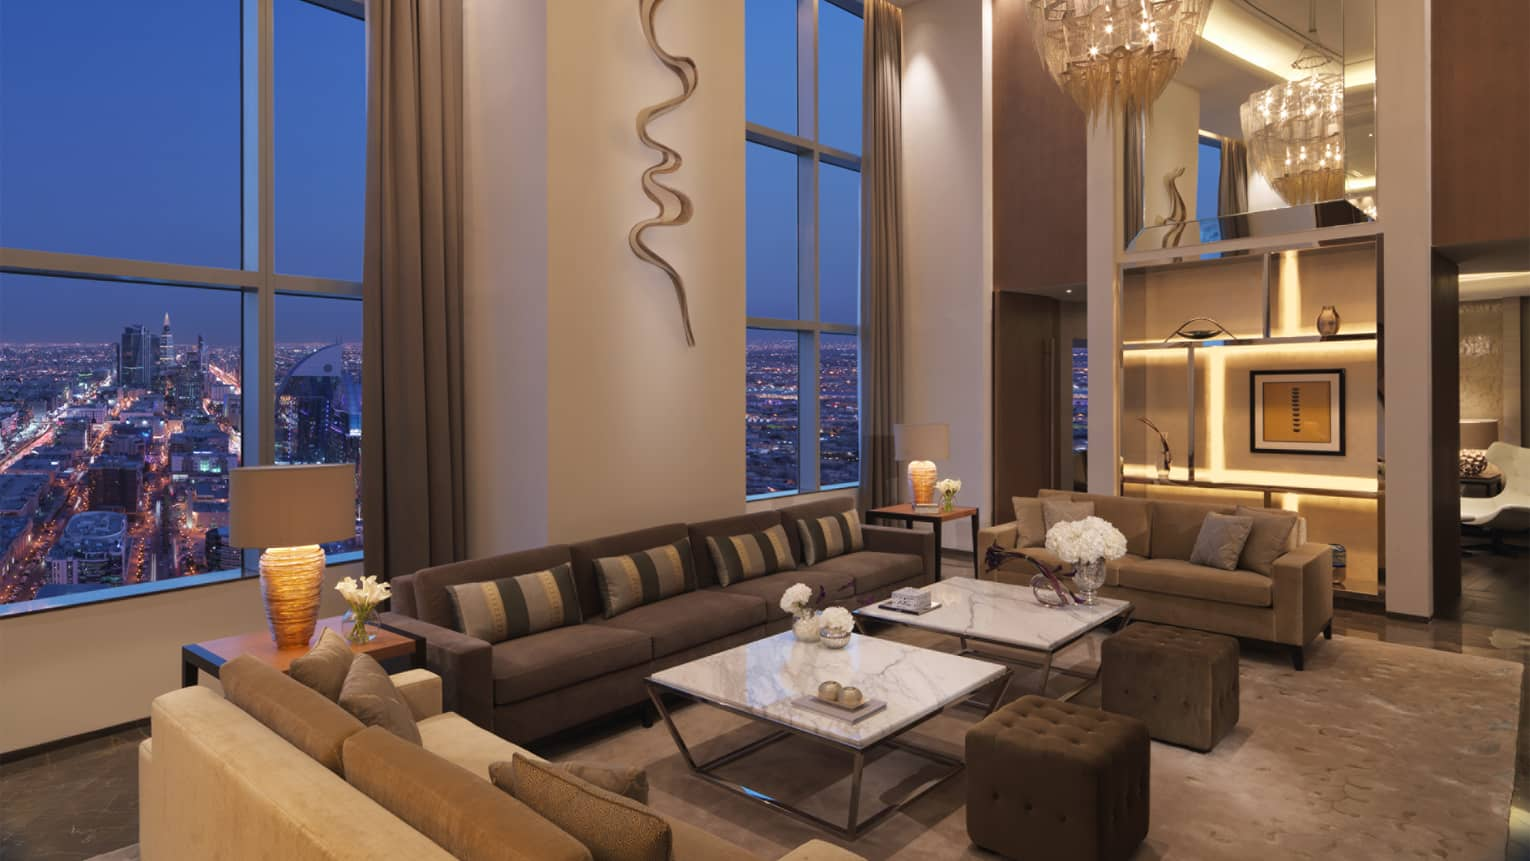 Seating lounge with long brown couches, white accent tables, and floor-to-ceiling windows